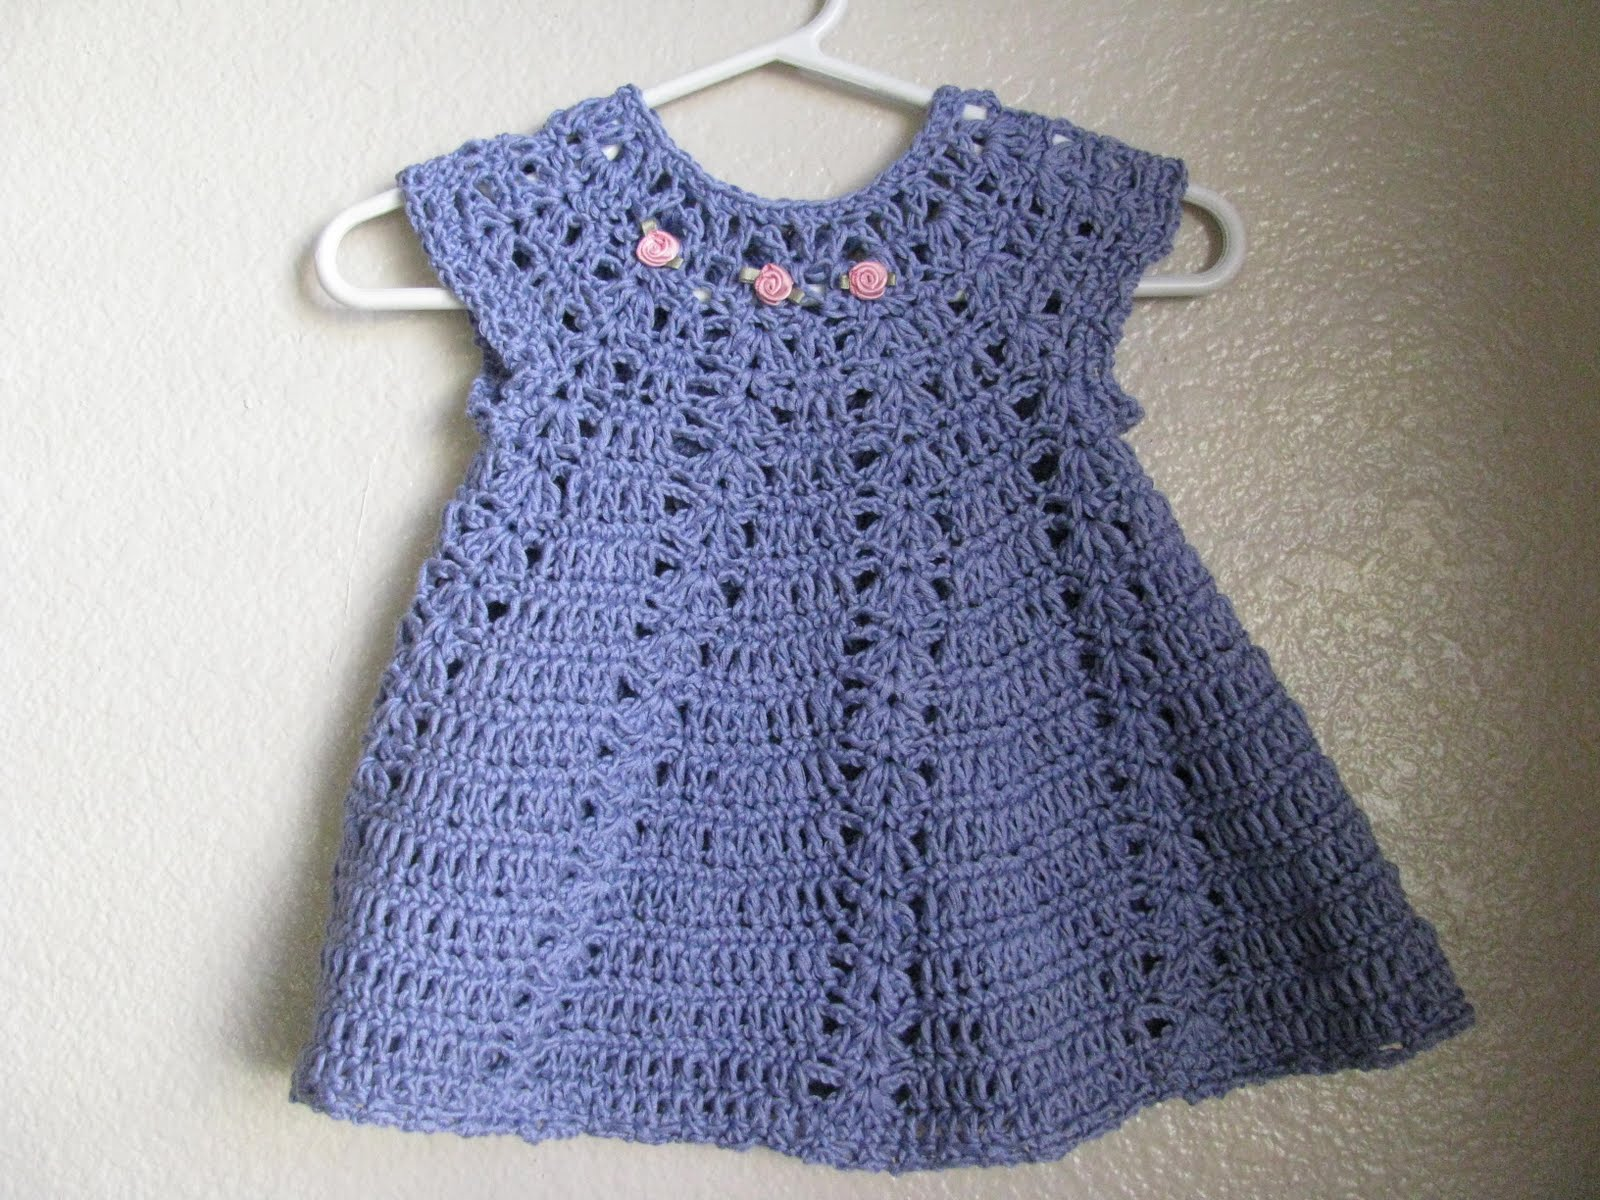 Free Crochet Patterns For Babies : BABY CROCHET DRESS PATTERN PINEAPPLE Crochet Patterns